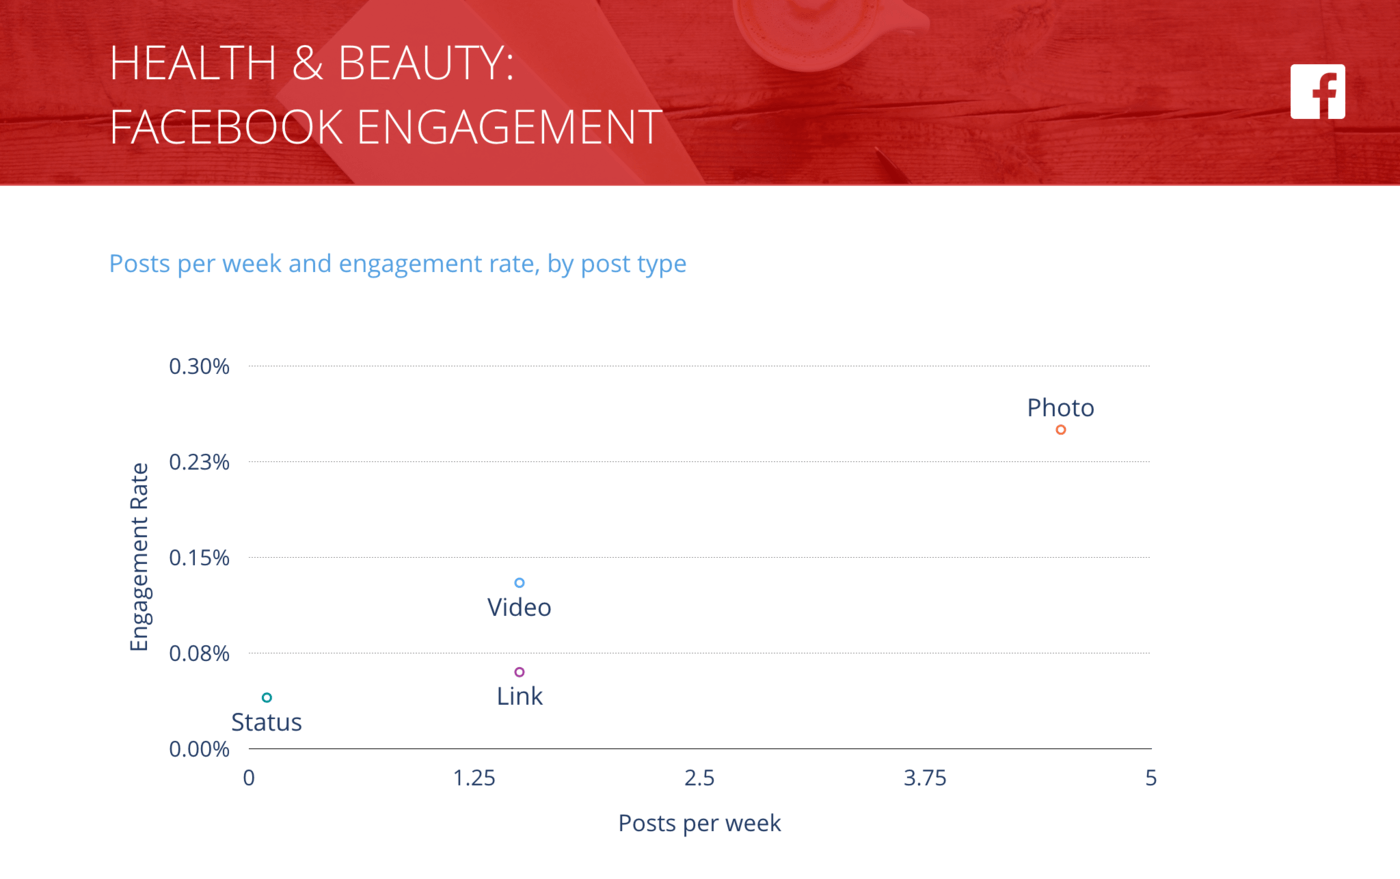 slide for Facebook Posts per Week vs. Engagement Rate per Post, Health & Beauty